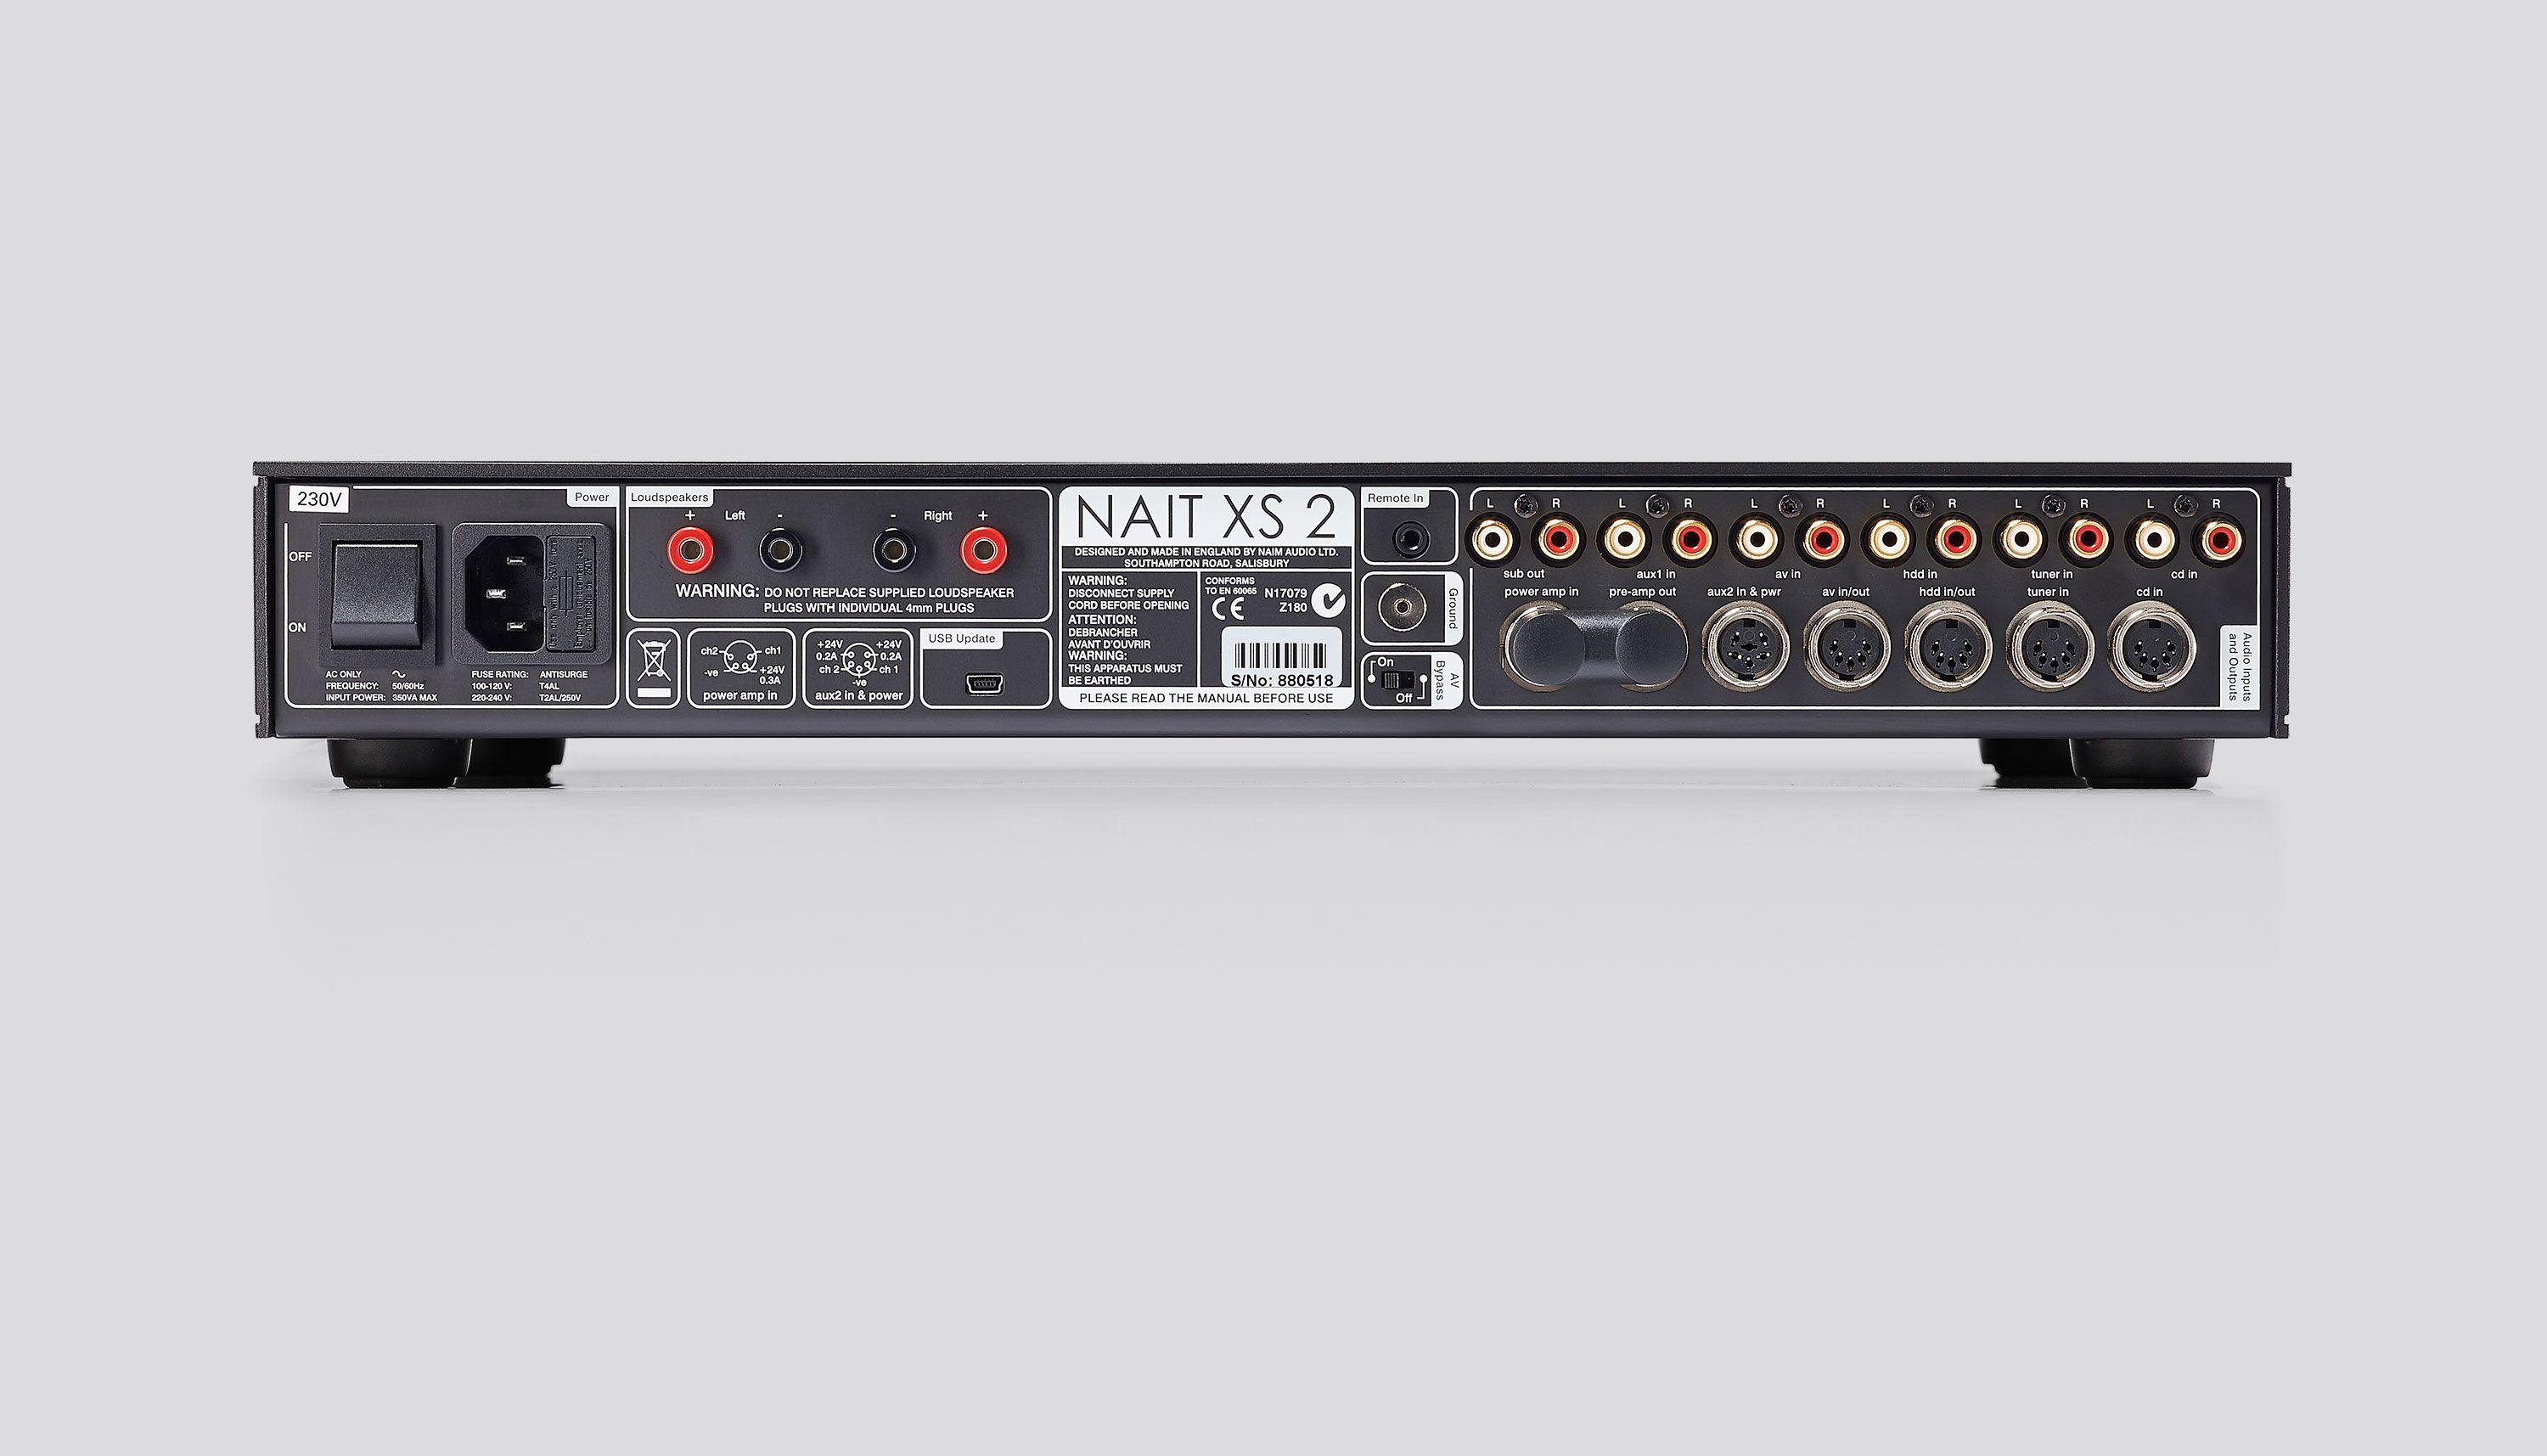 NAIT XS 2 Integrated Amplifier